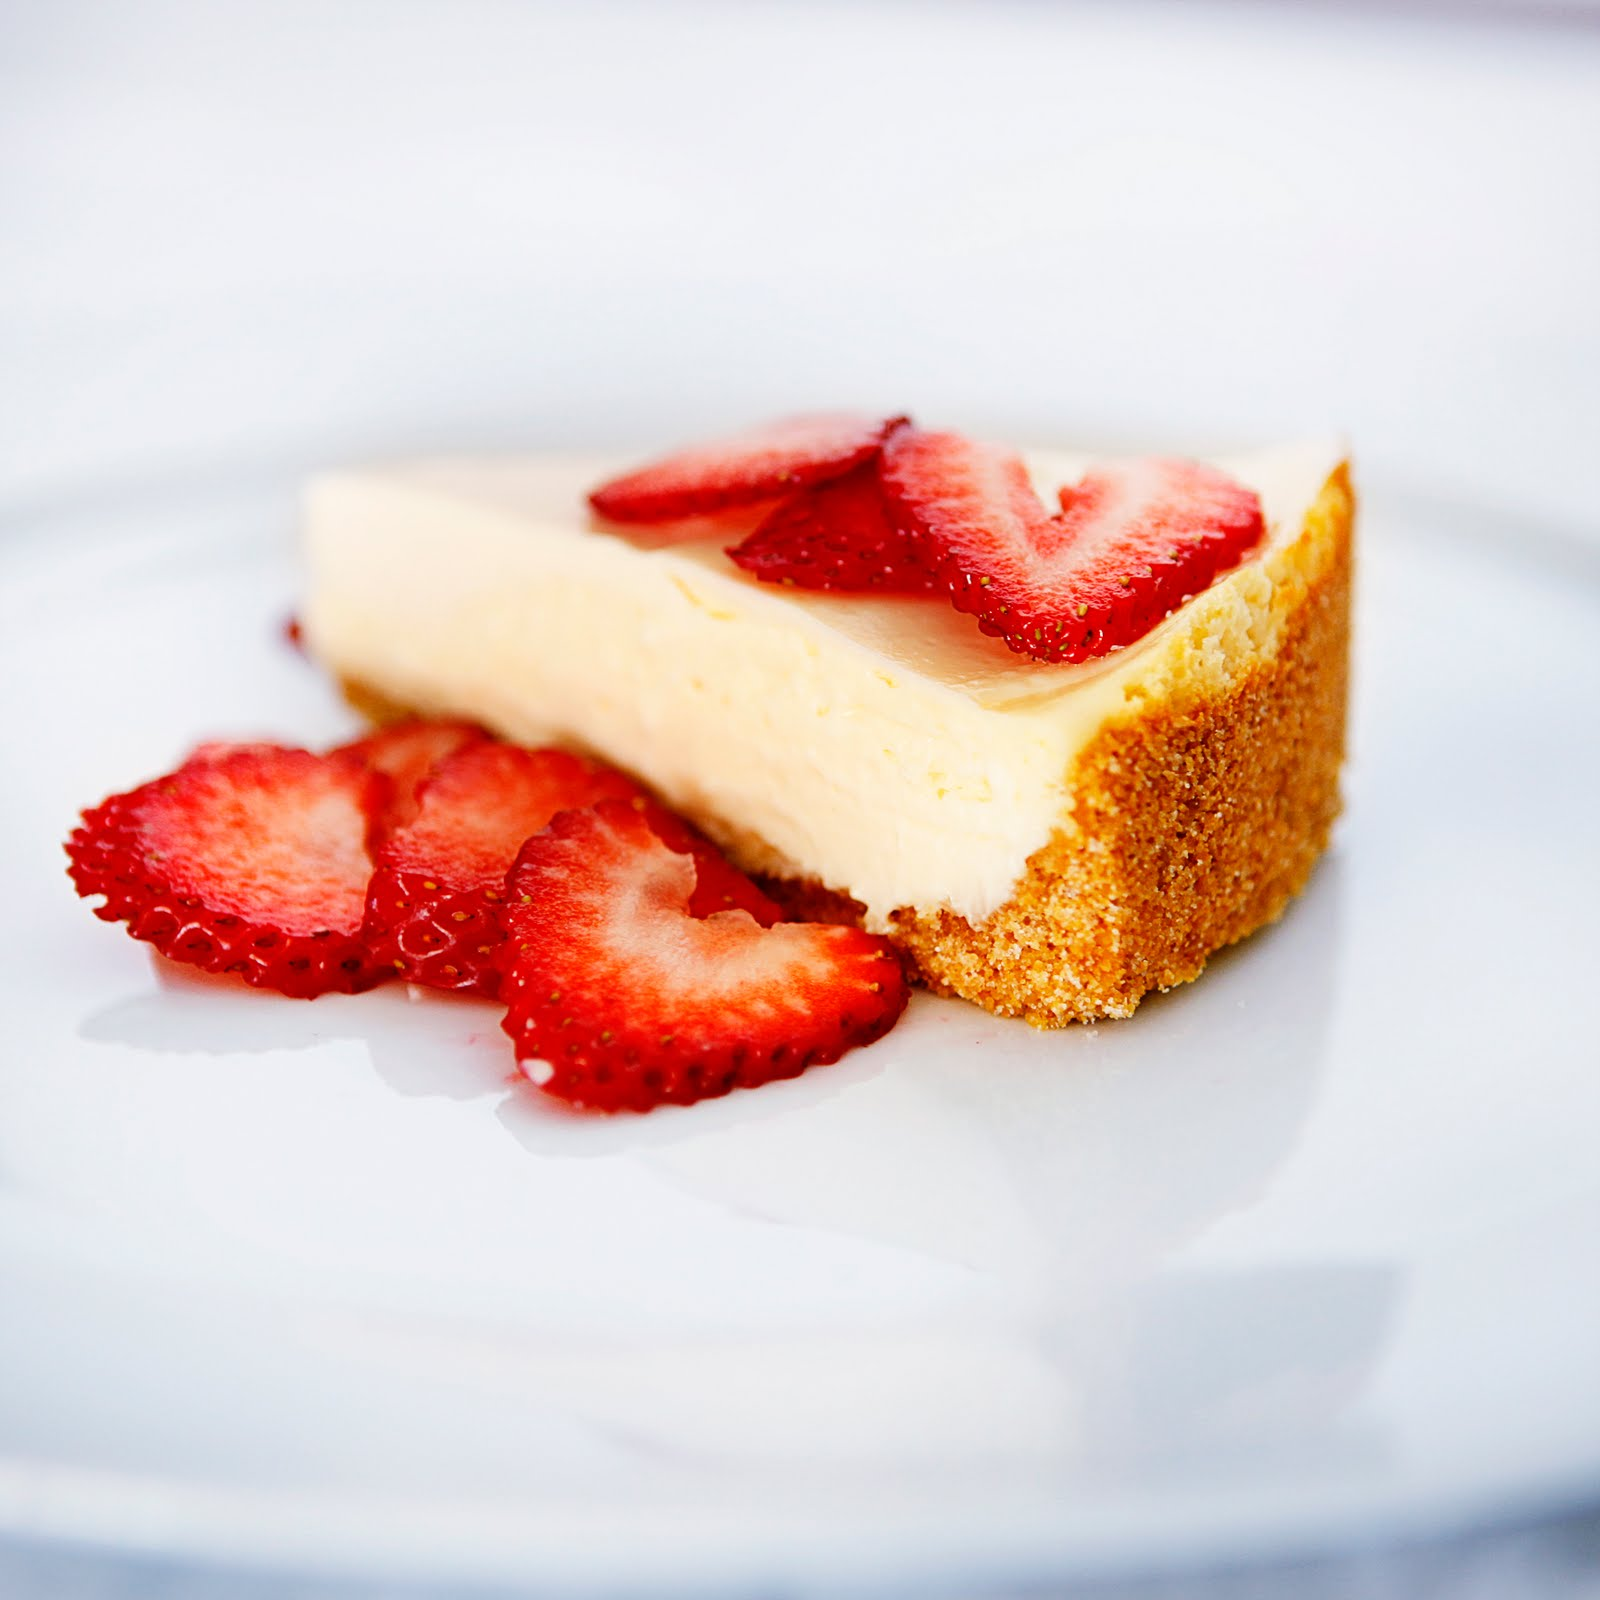 Confessions of a Bakeaholic Cheesecake